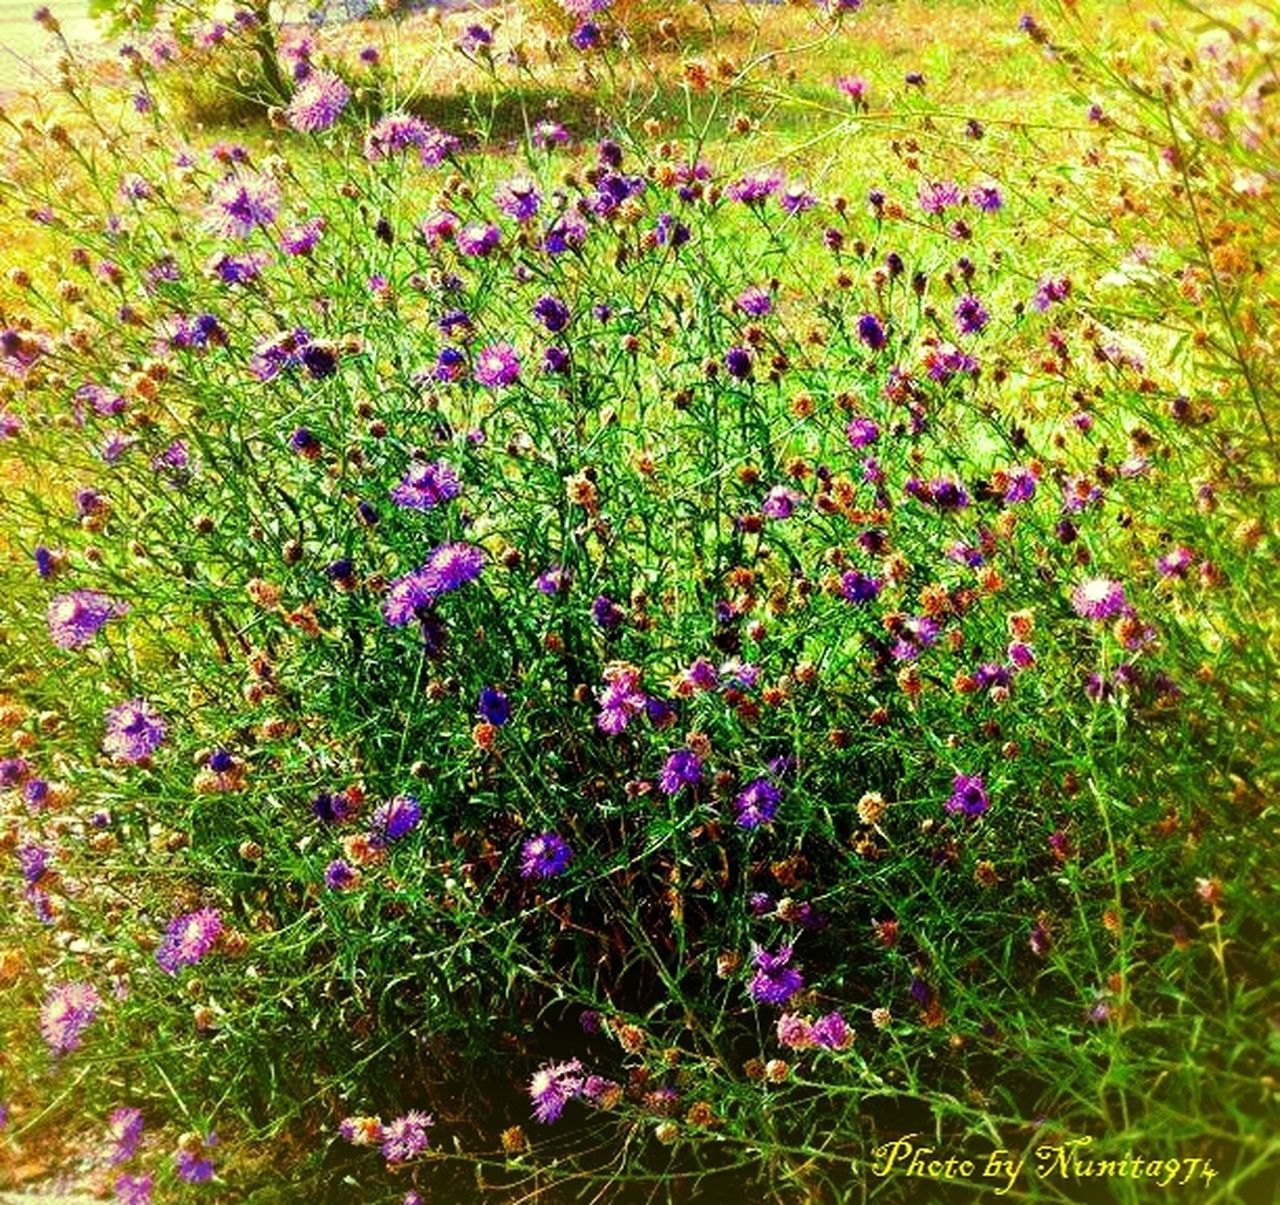 growth, flower, nature, beauty in nature, plant, field, purple, grass, no people, leaf, fragility, tranquility, outdoors, green color, day, multi colored, blooming, freshness, close-up